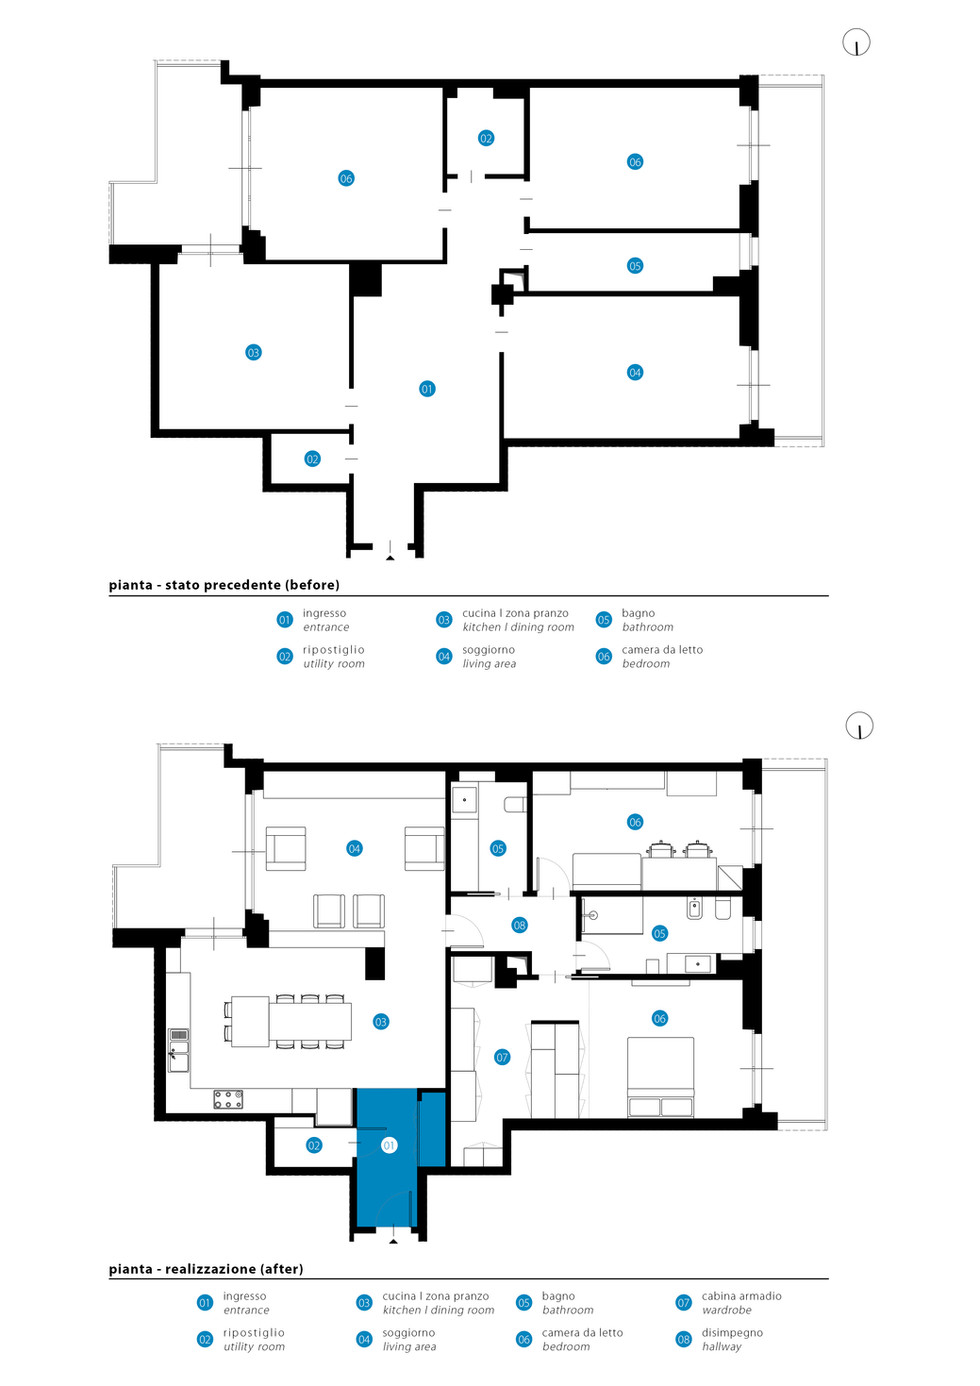 Pianta I Floor Plan